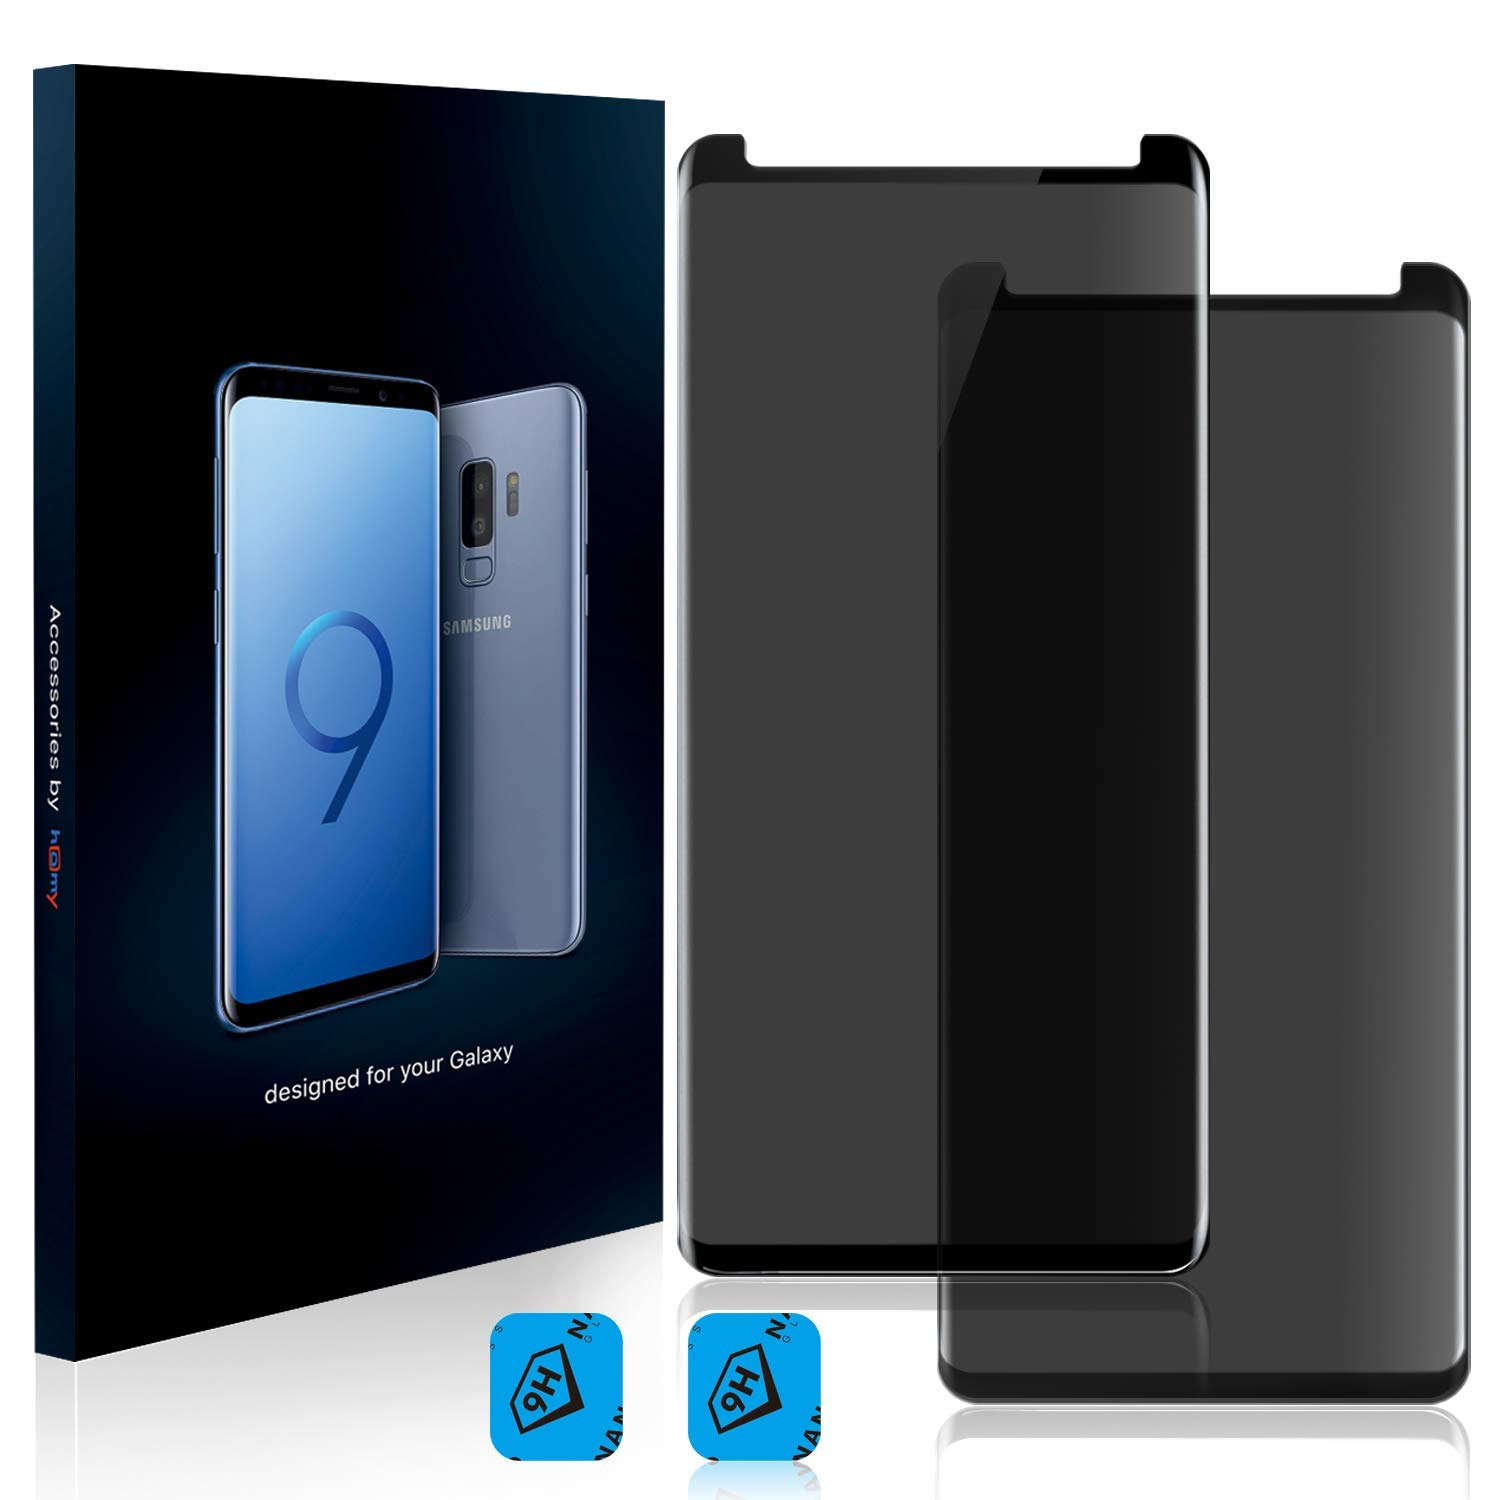 Homy Compatible [2-Pack] Privacy UHD Tempered Glass Screen Protector for Samsung Galaxy S9 Plus - Free Camera Lens Cover. Anti Spy Filter Made of 9H Curved 3D High Clarity Full Cover Japanese Glass.